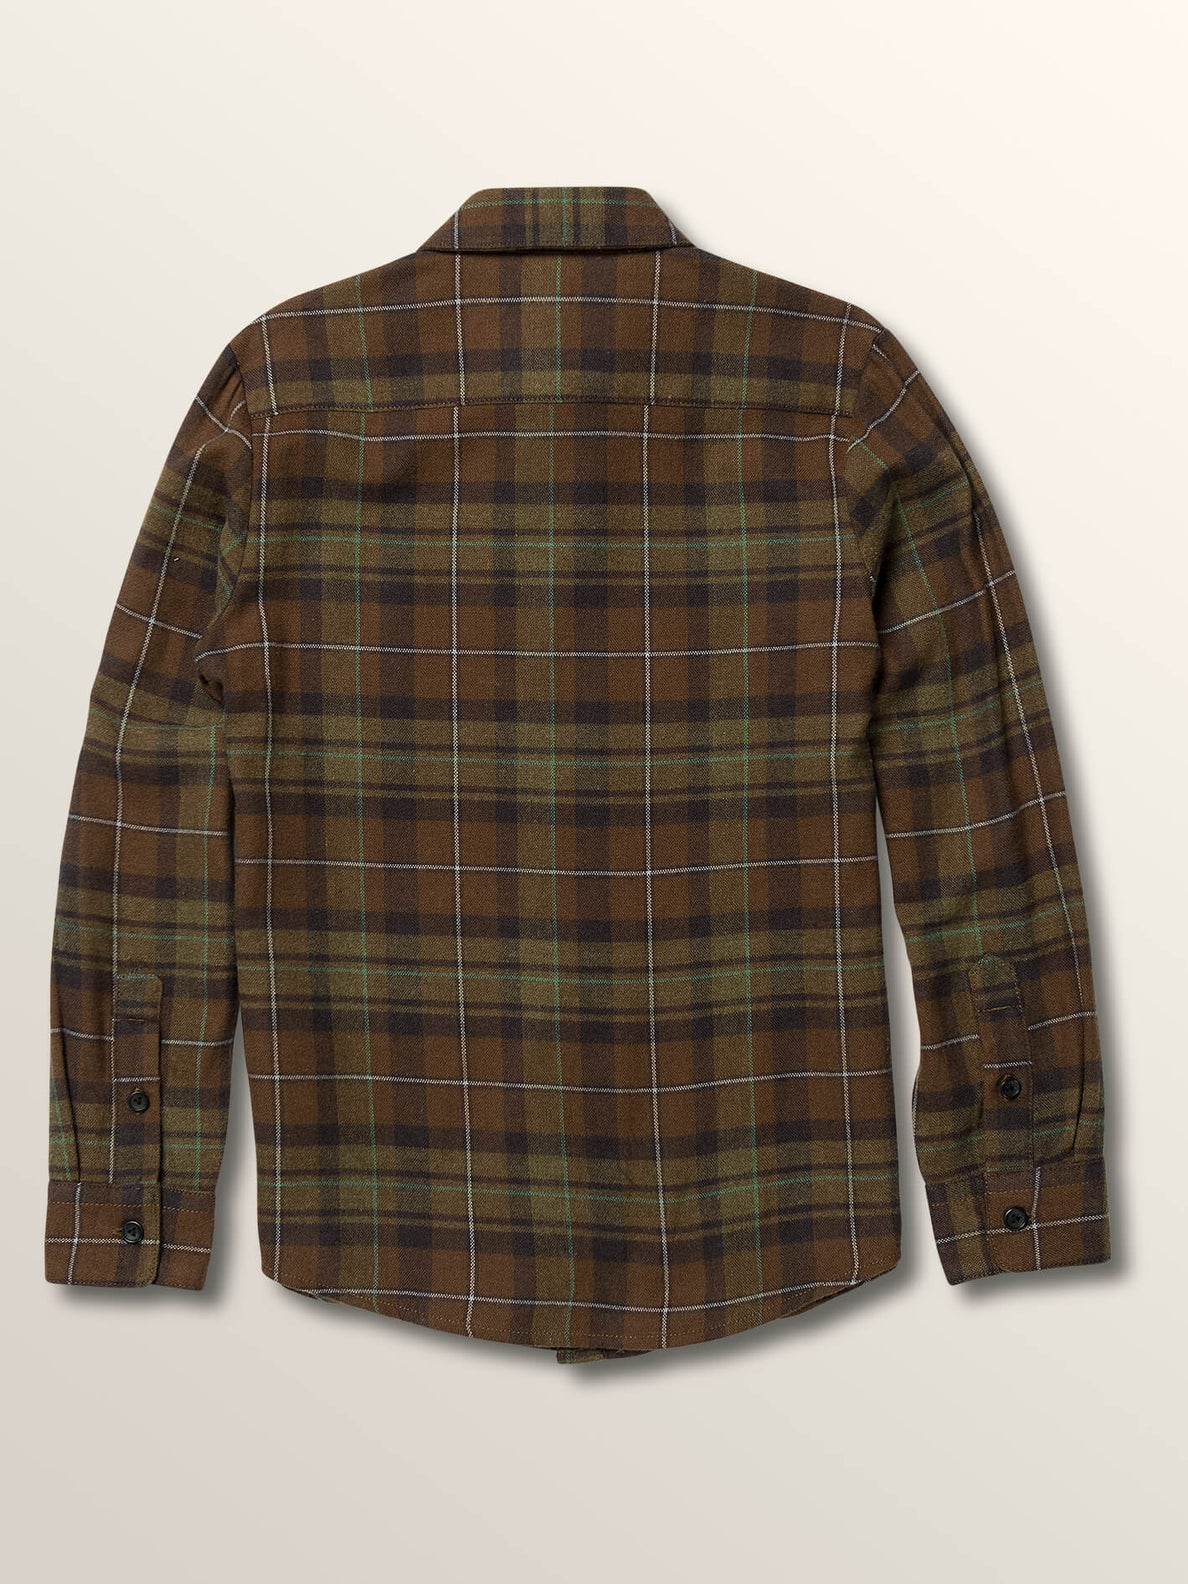 Big Boys Lumberg Long Sleeve Flannel In Vineyard Green, Back View